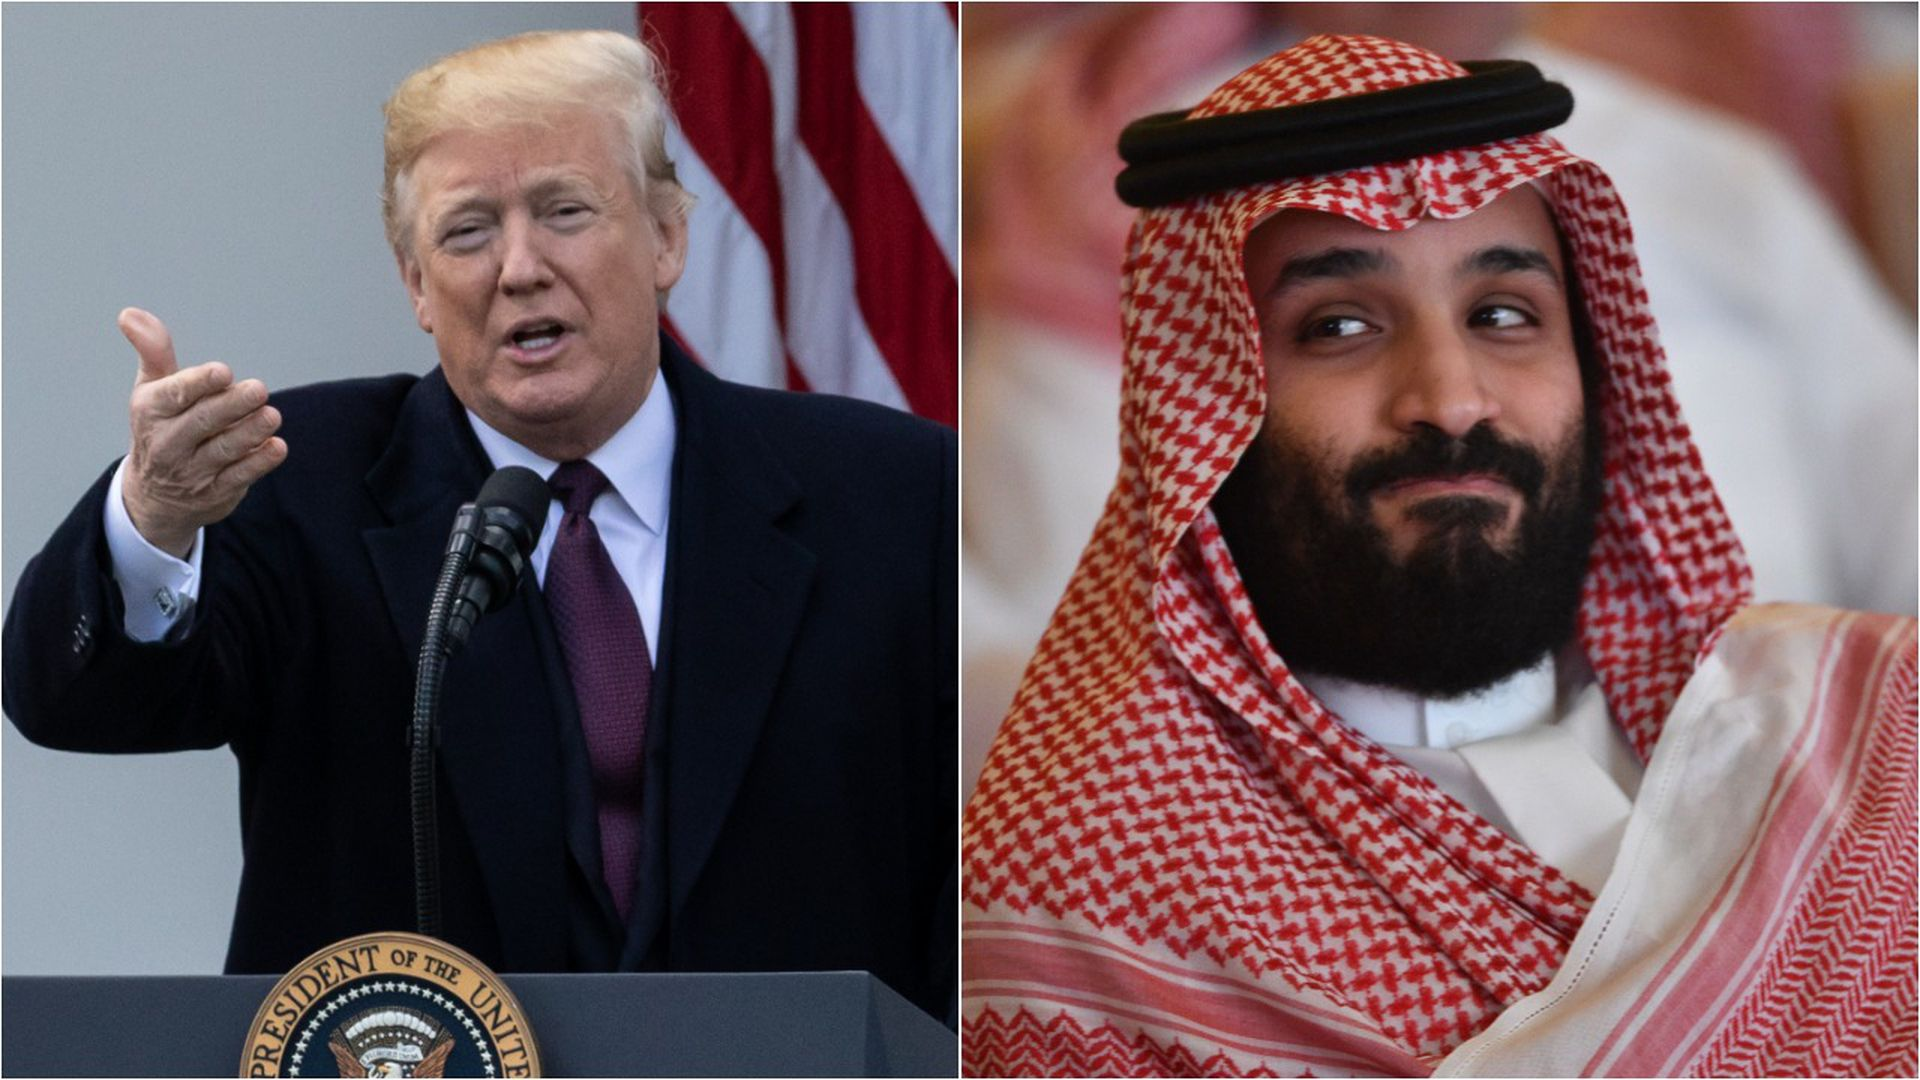 A split-screen image of President Trump and Mohammed bin Salman.